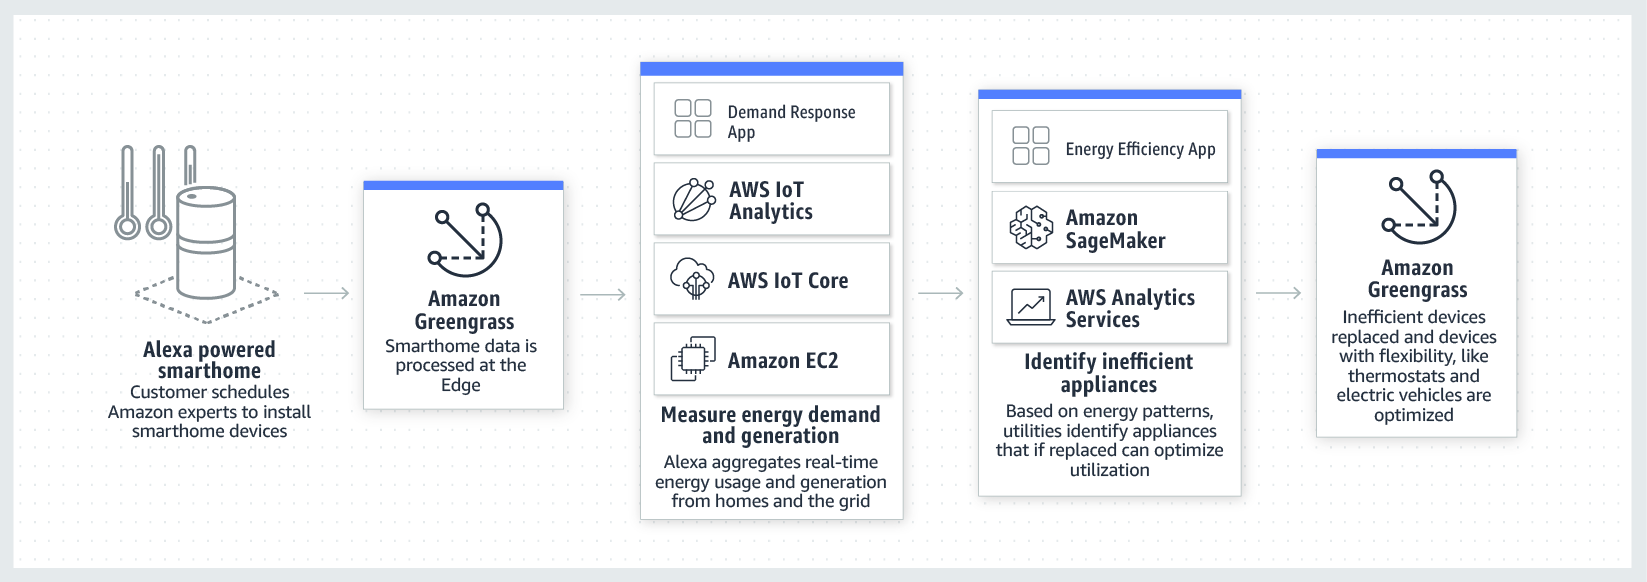 product-page-diagram-AWS-for-Power-Utilities_connected-home-demand-response@1.5x